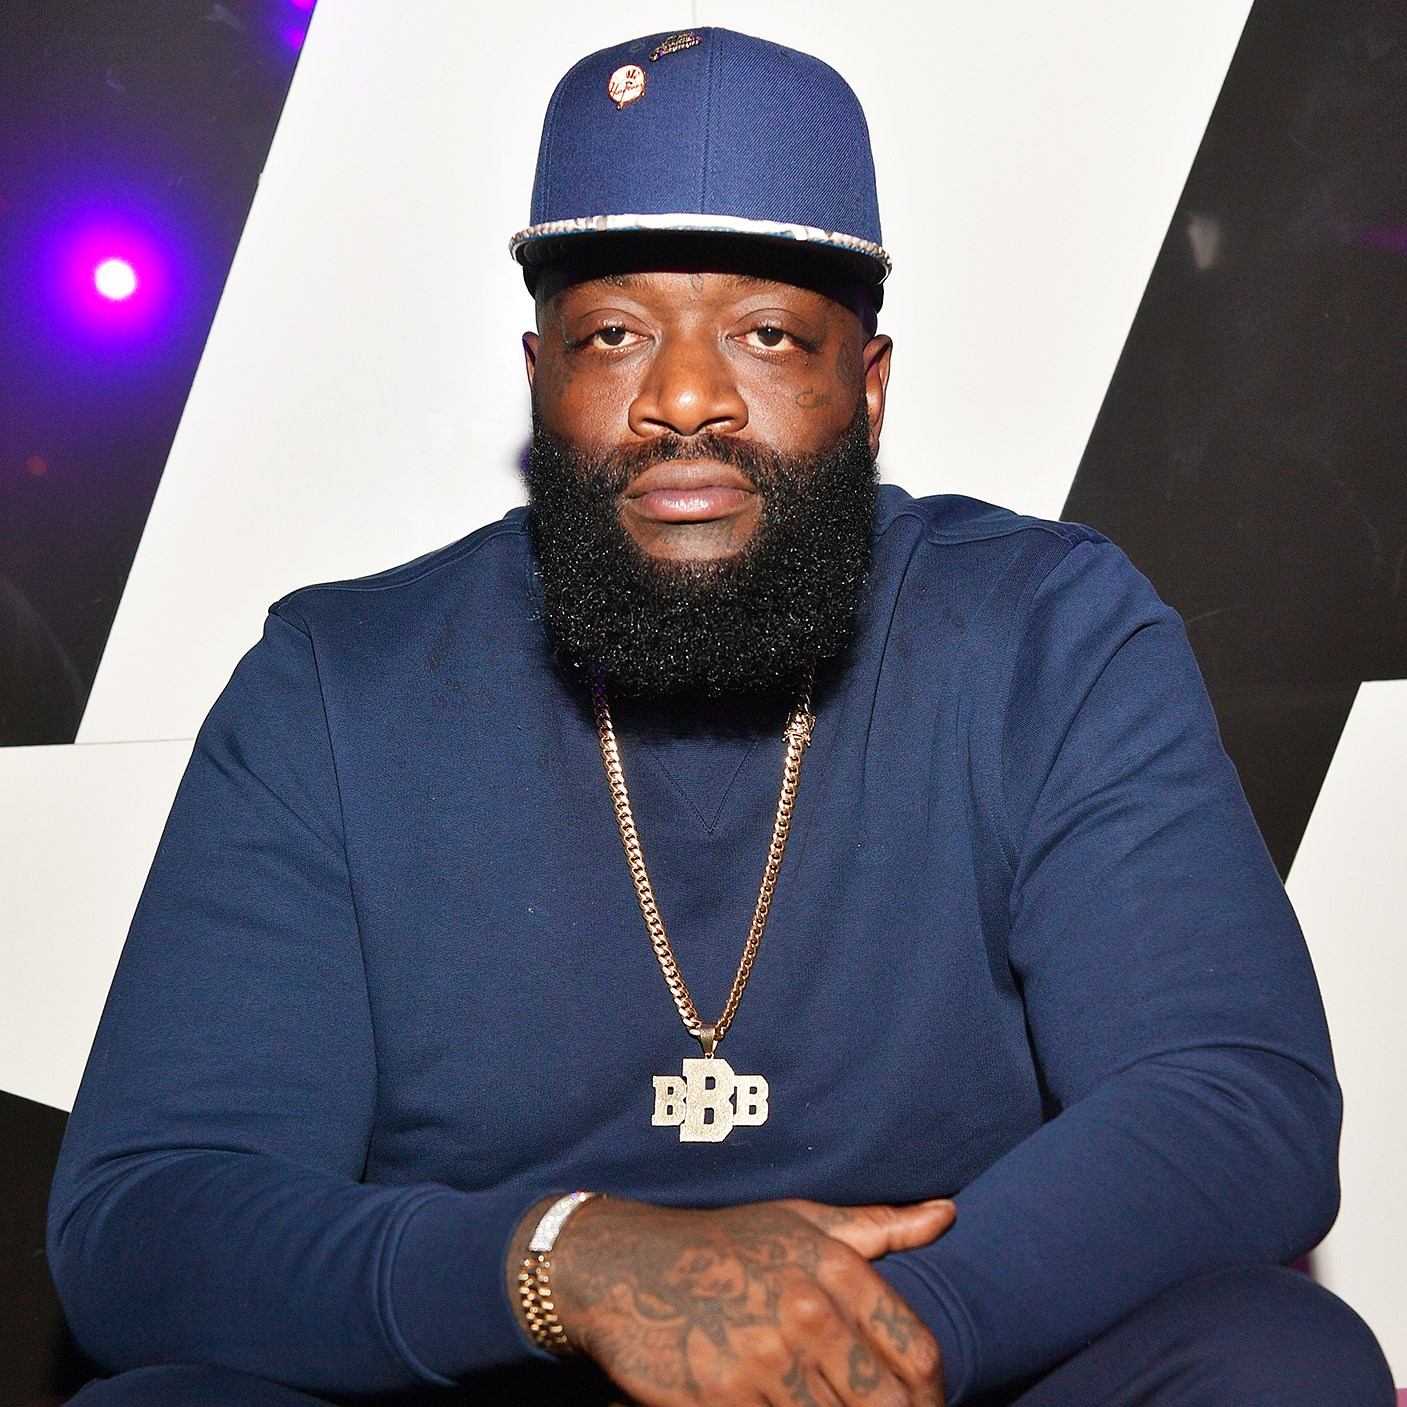 Rick Ross Updates Fans With Photo After Hospitalization